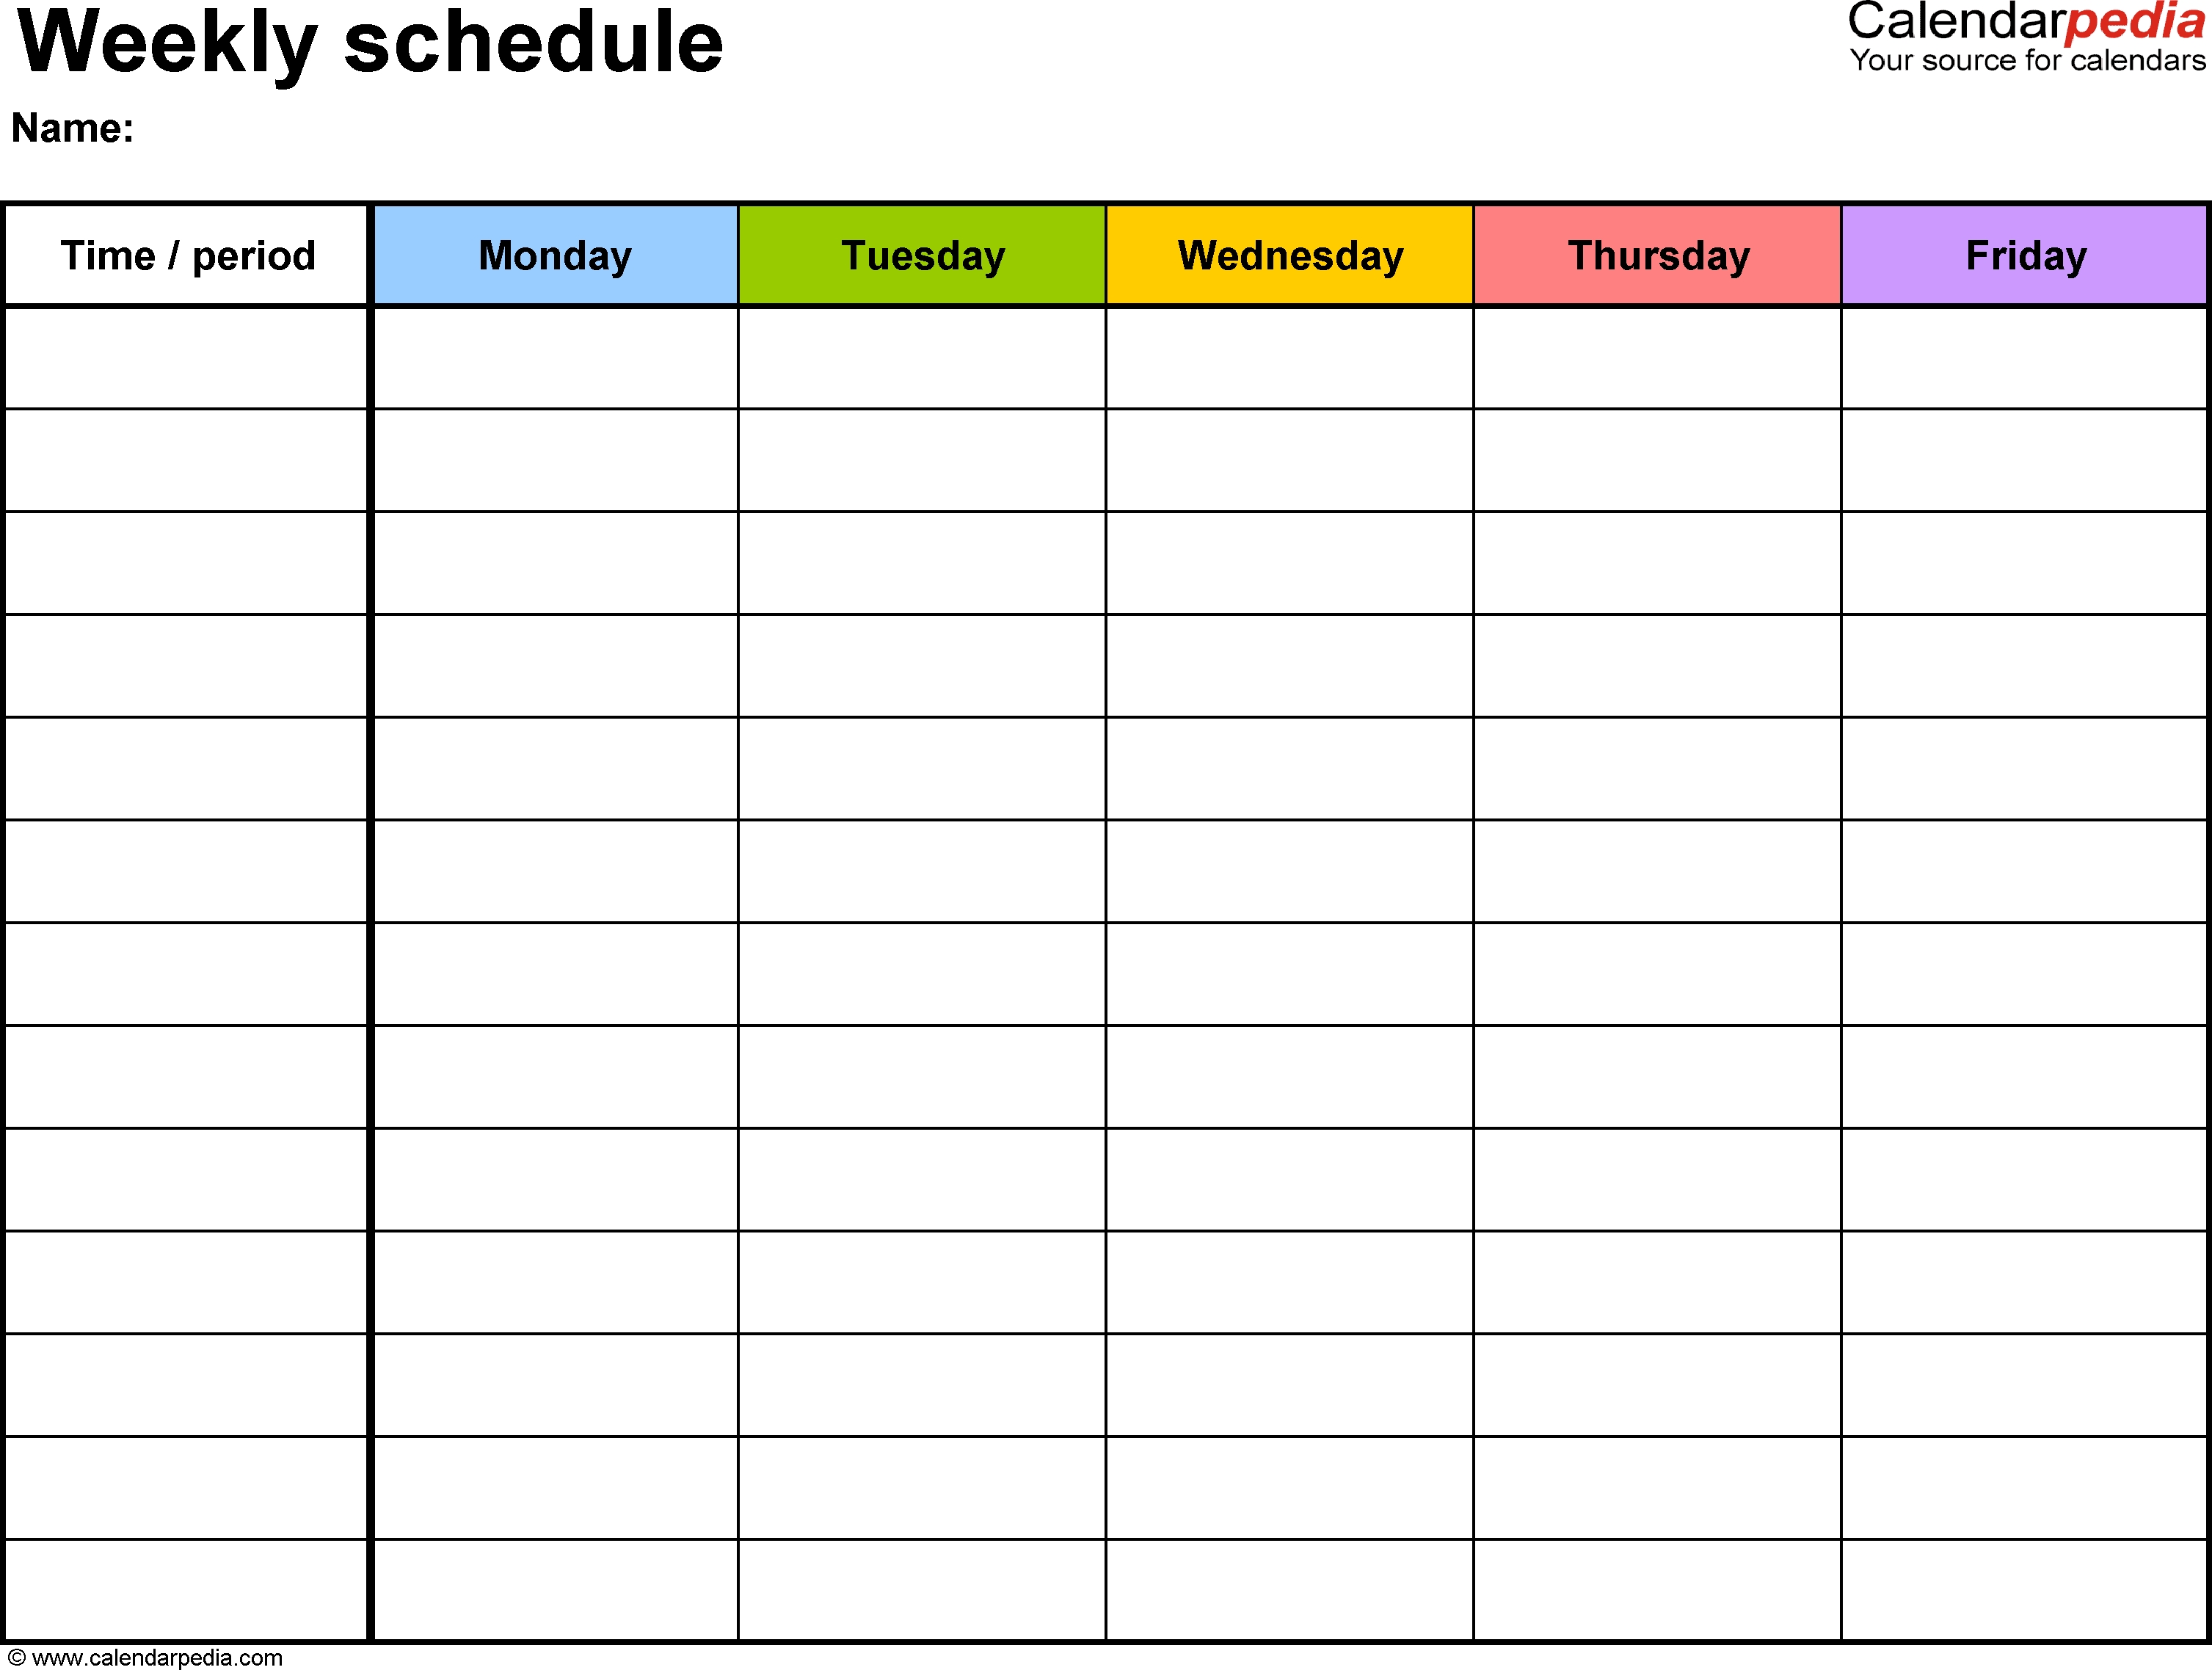 Free Weekly Schedule Templates For Word - 18 Templates pertaining to 7 Day Calendar Template Printable